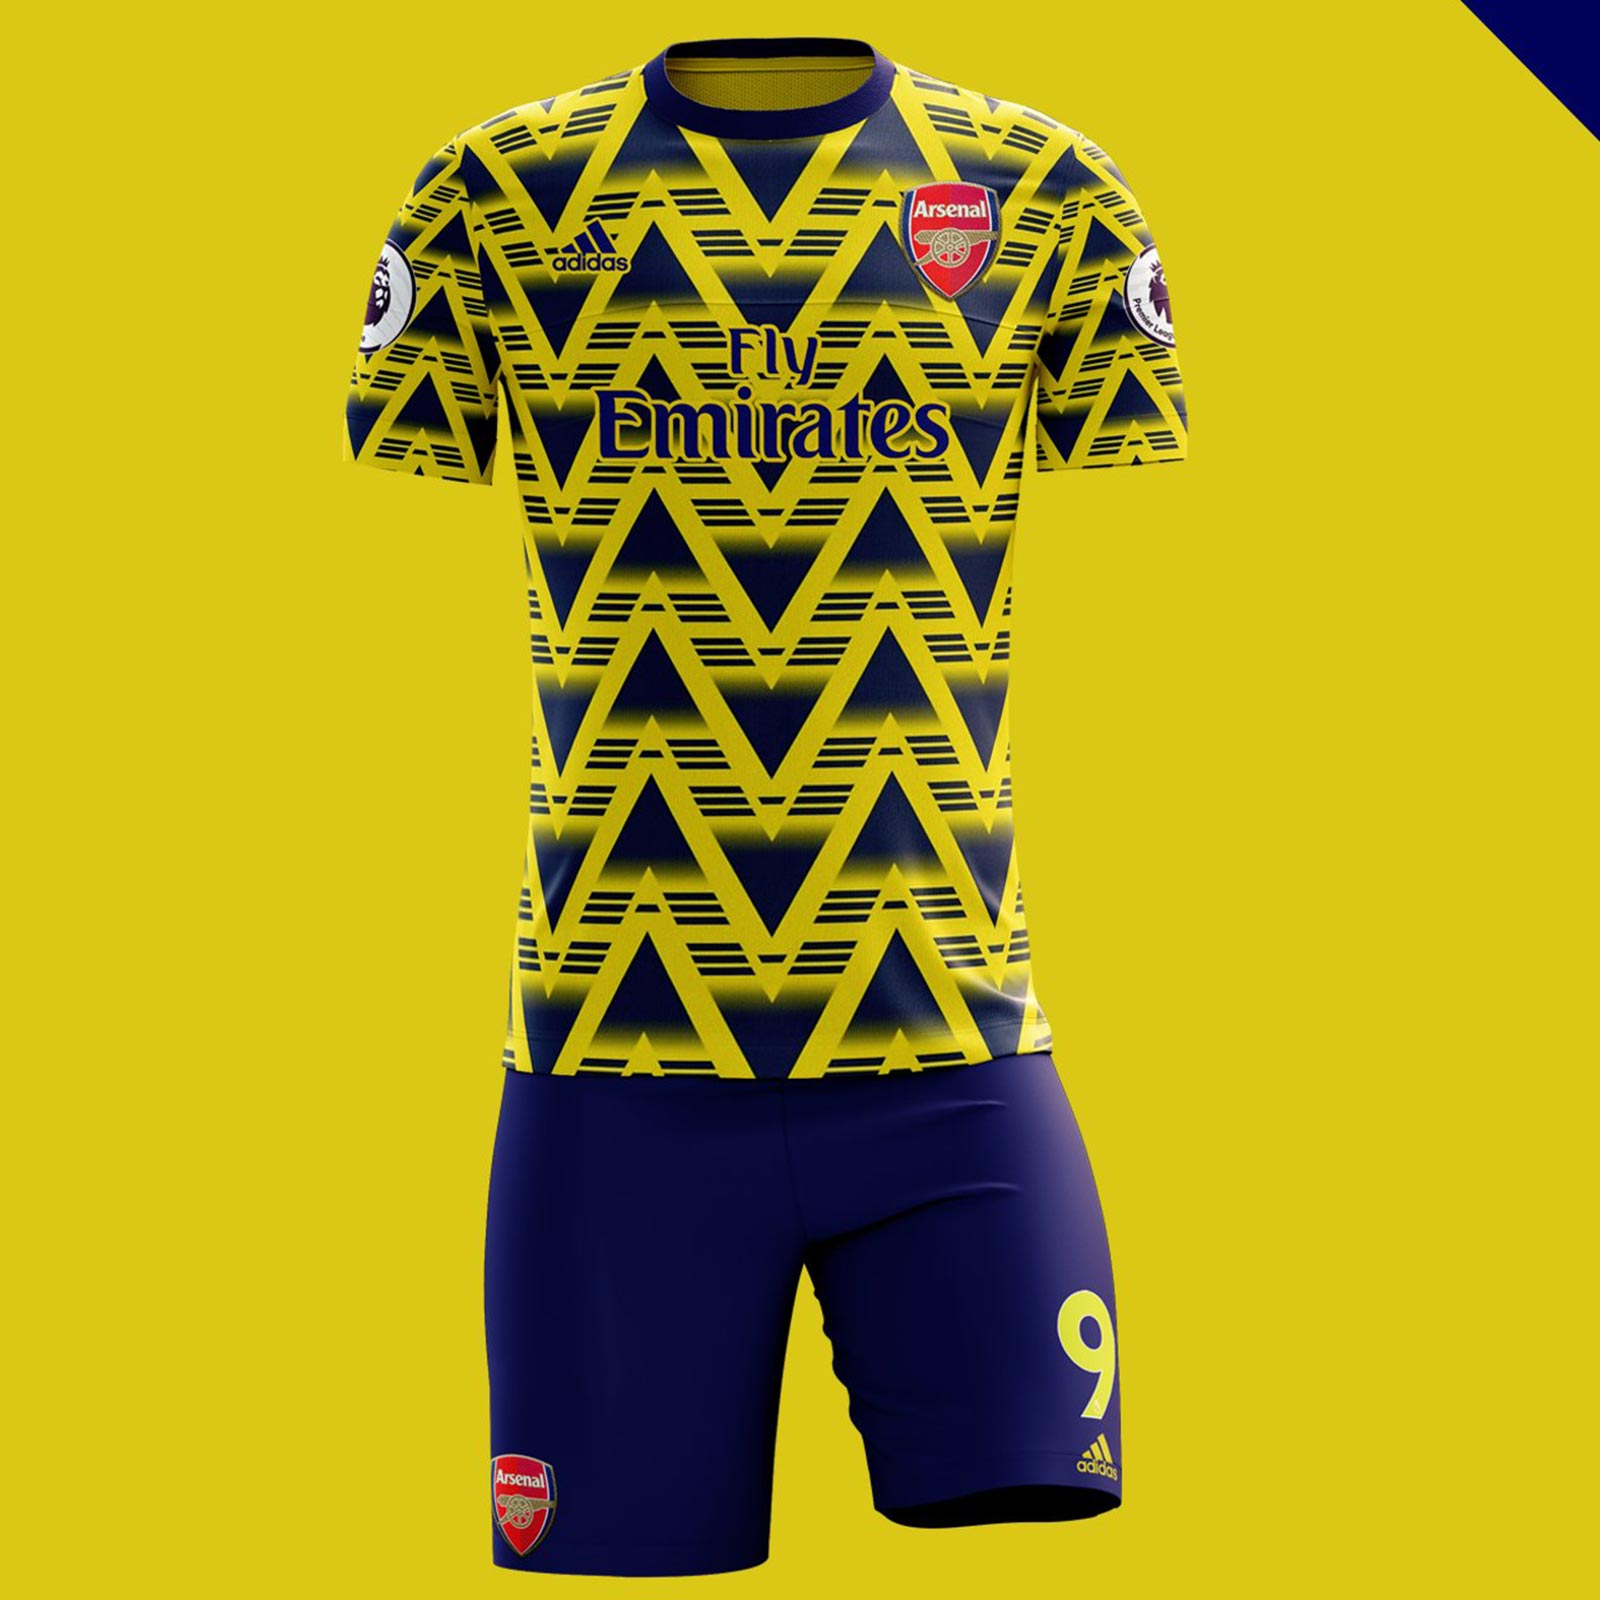 9ebe2139839 Adidas Arsenal 19-20 Home, Away & Third Concept Kits - Footy Headlines